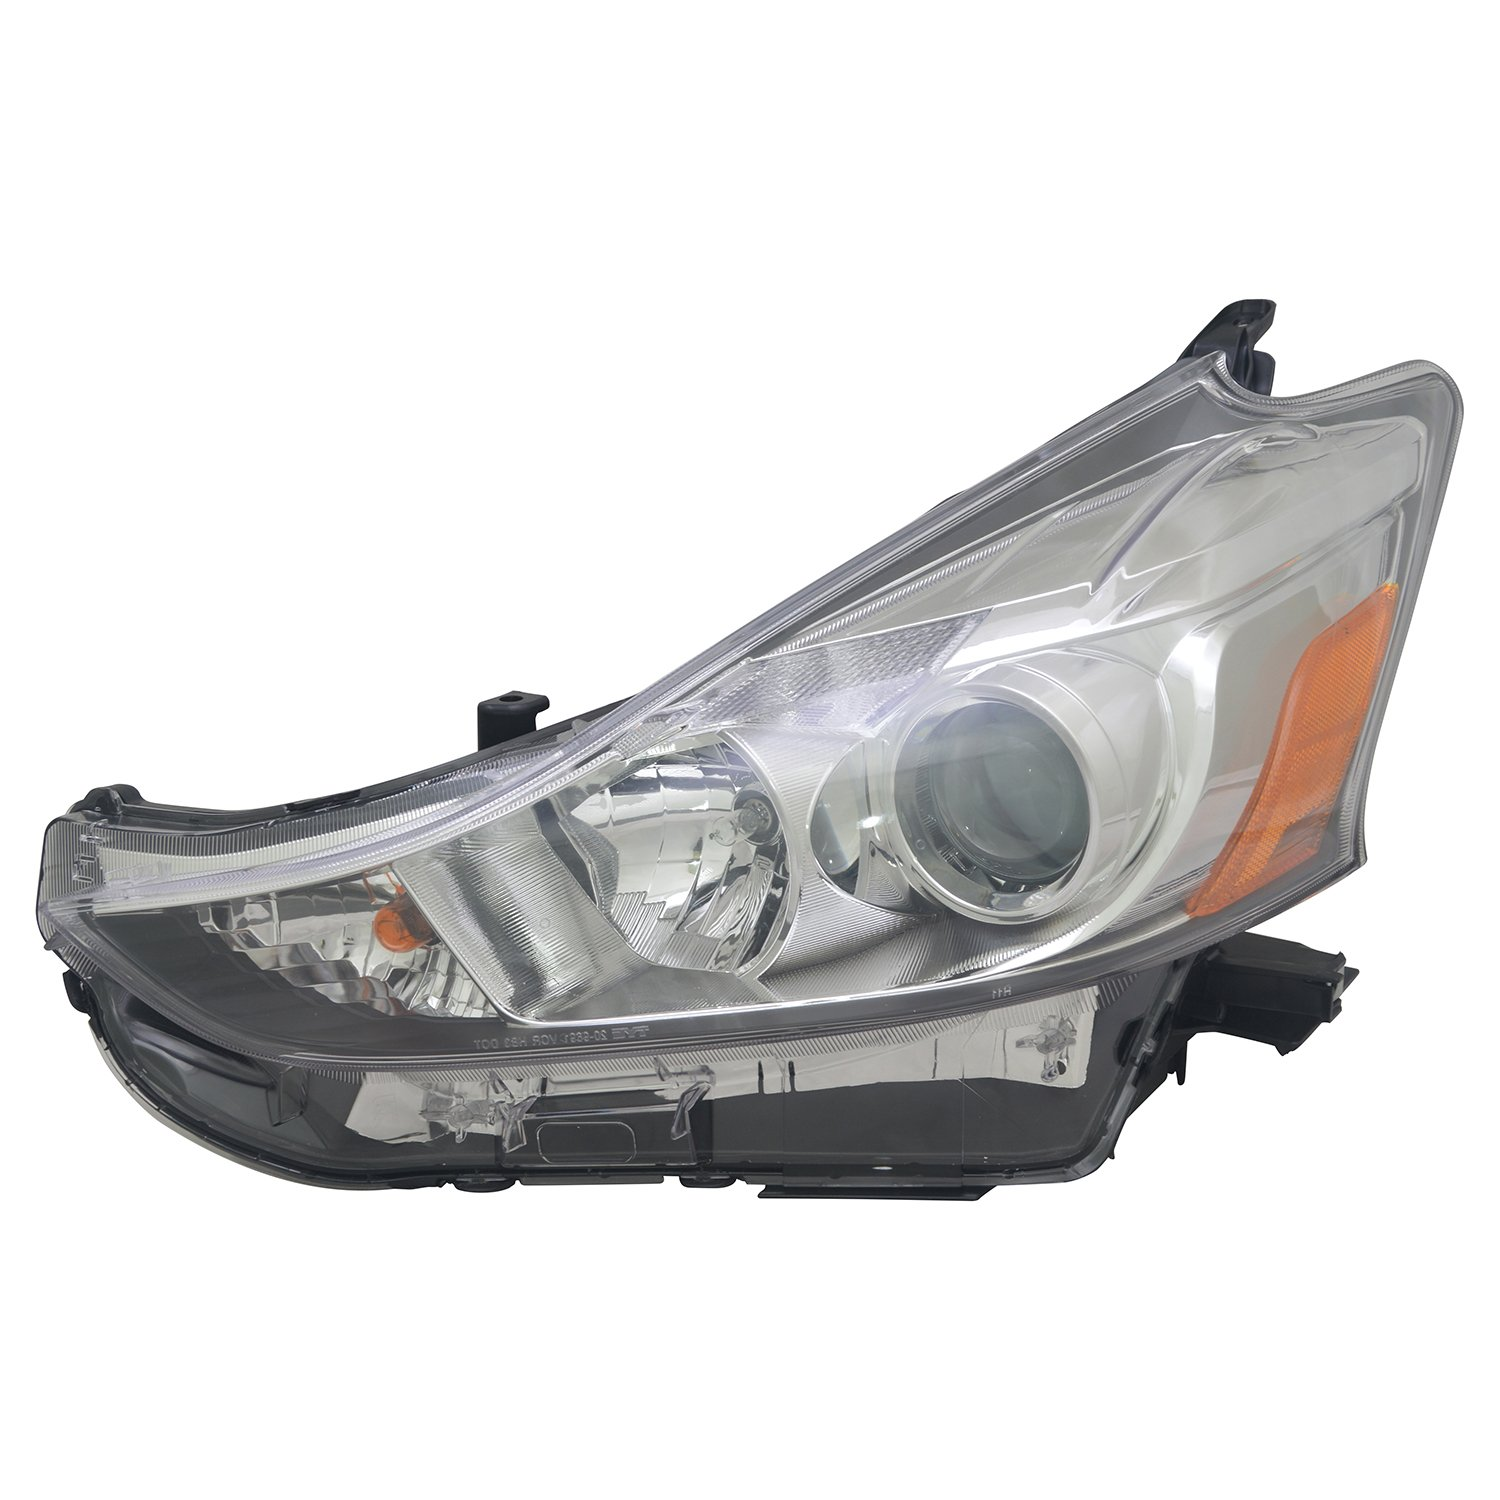 Partslink Number TO2518152 Multiple Manufacturers TO2518152N OE Replacement TOYOTA PRIUS/_V Headlight